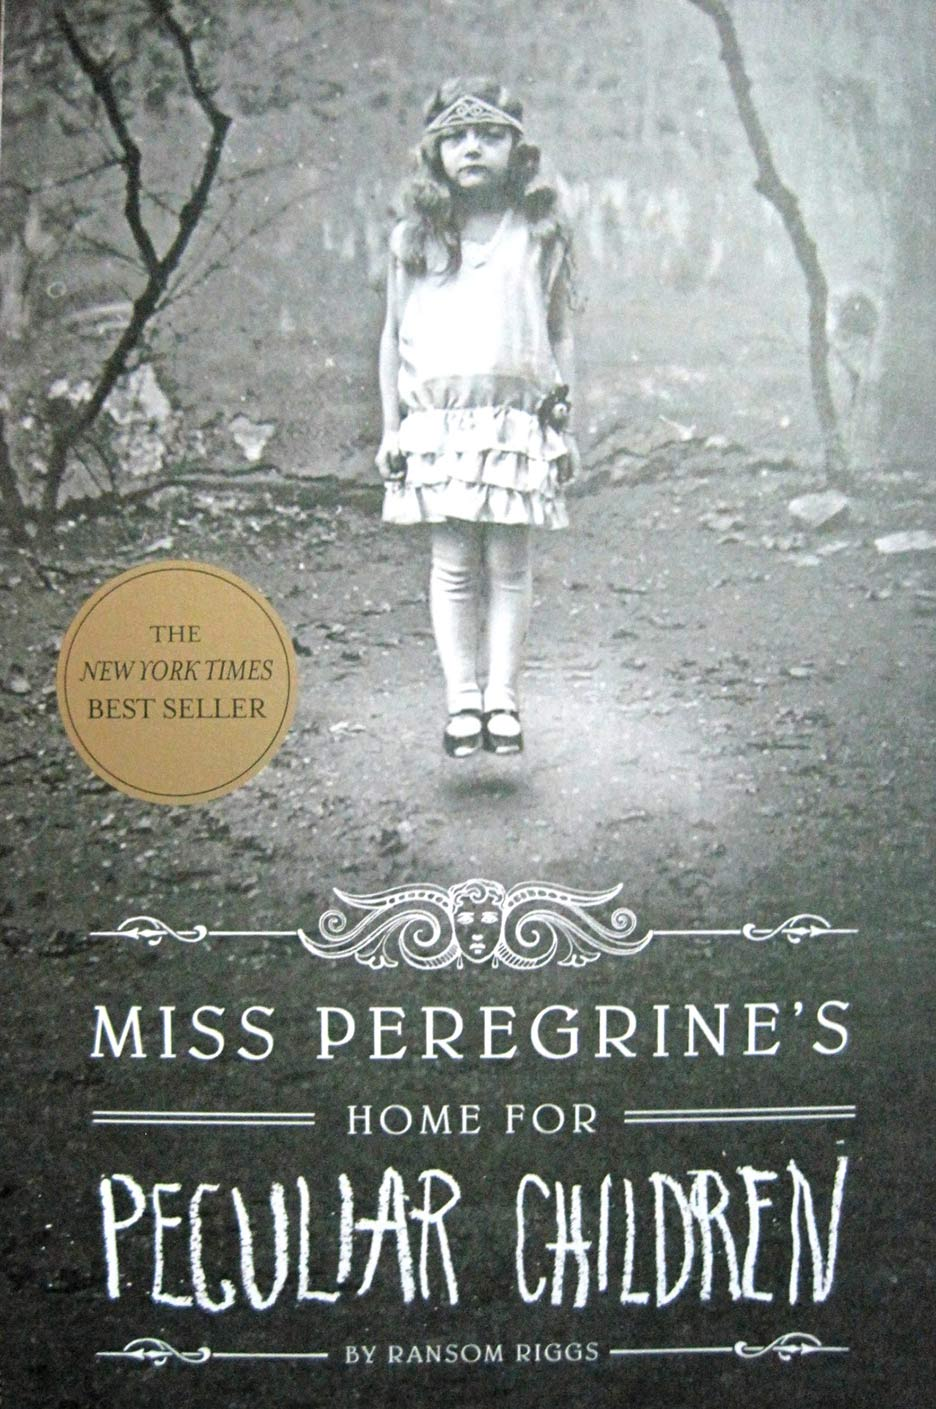 Miss Peregrine's Home for Peculiar Children Trailer - Book Cover